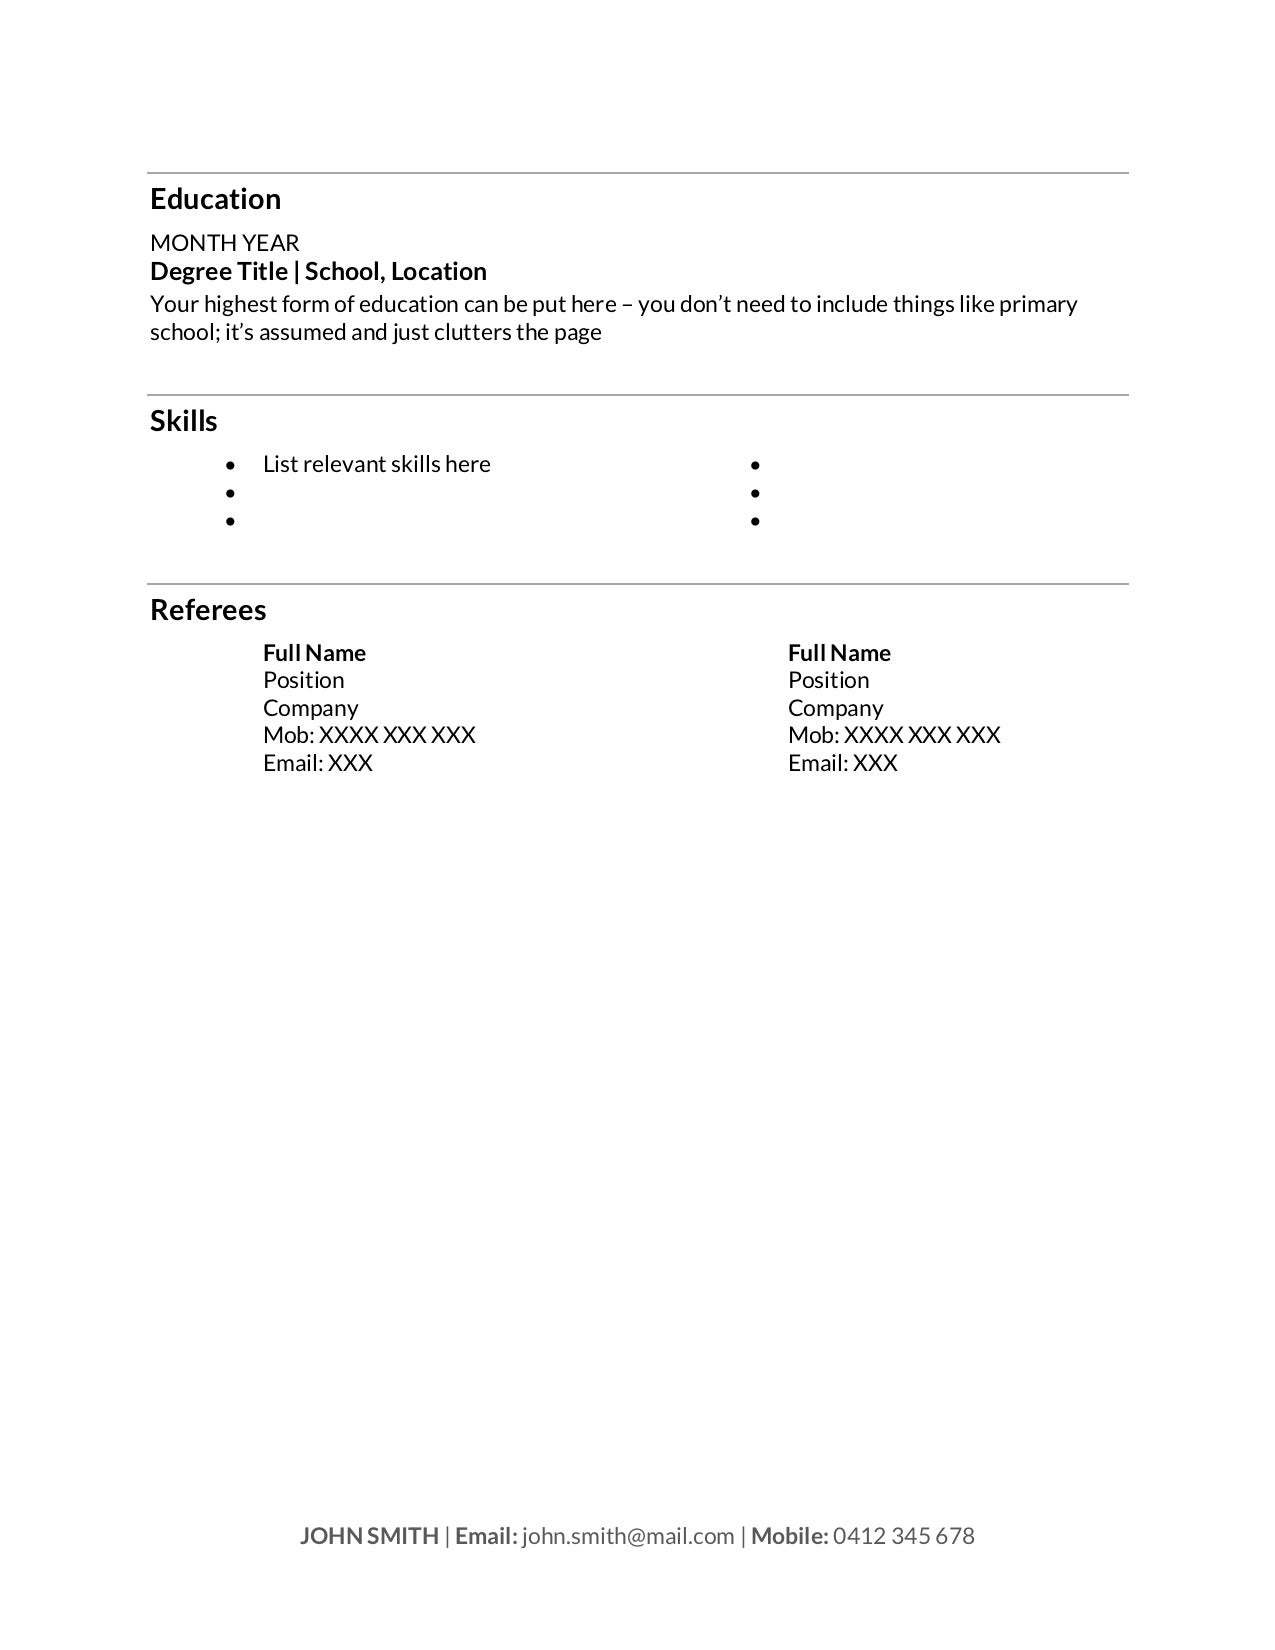 free resume templates to write in training au number location objective for specific job Resume Resume Page Number Location